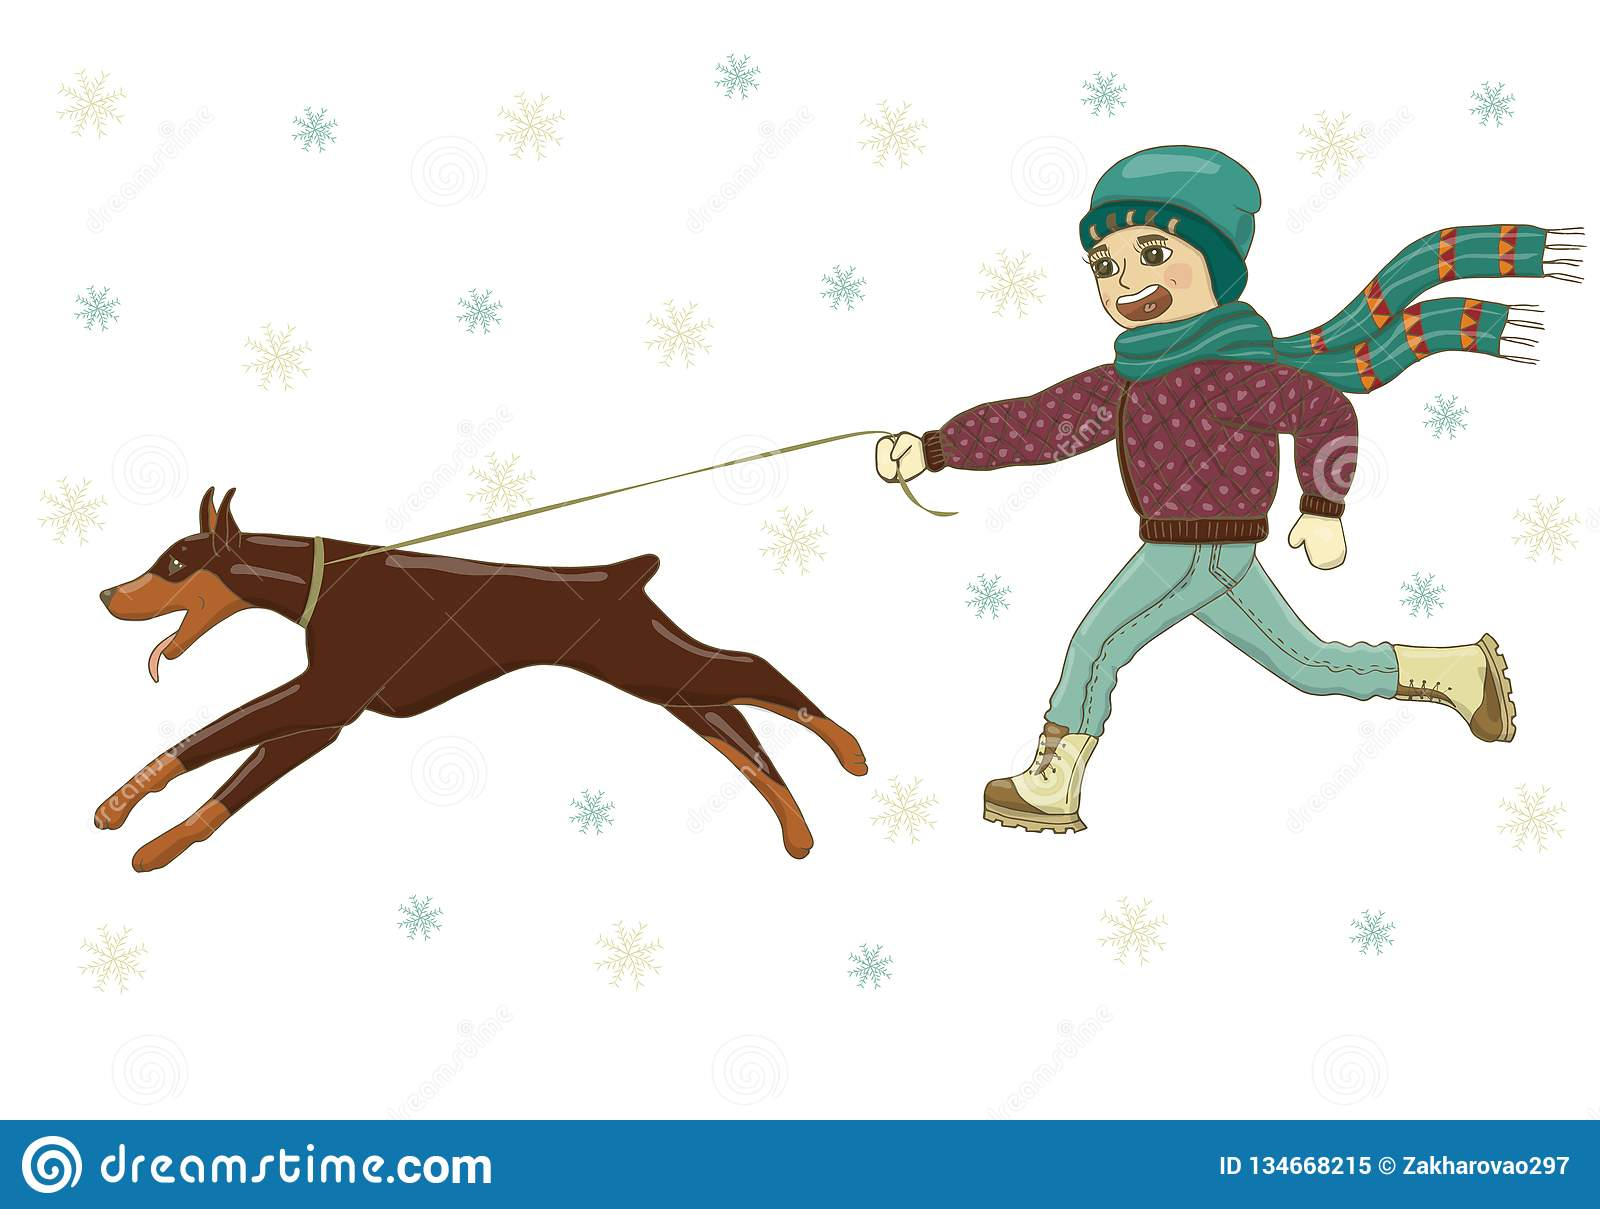 Vector illustration of a boy walking with a dog Doberman on the street in winter. In hat, in scarf, jacket, jeans, boots, mittens.